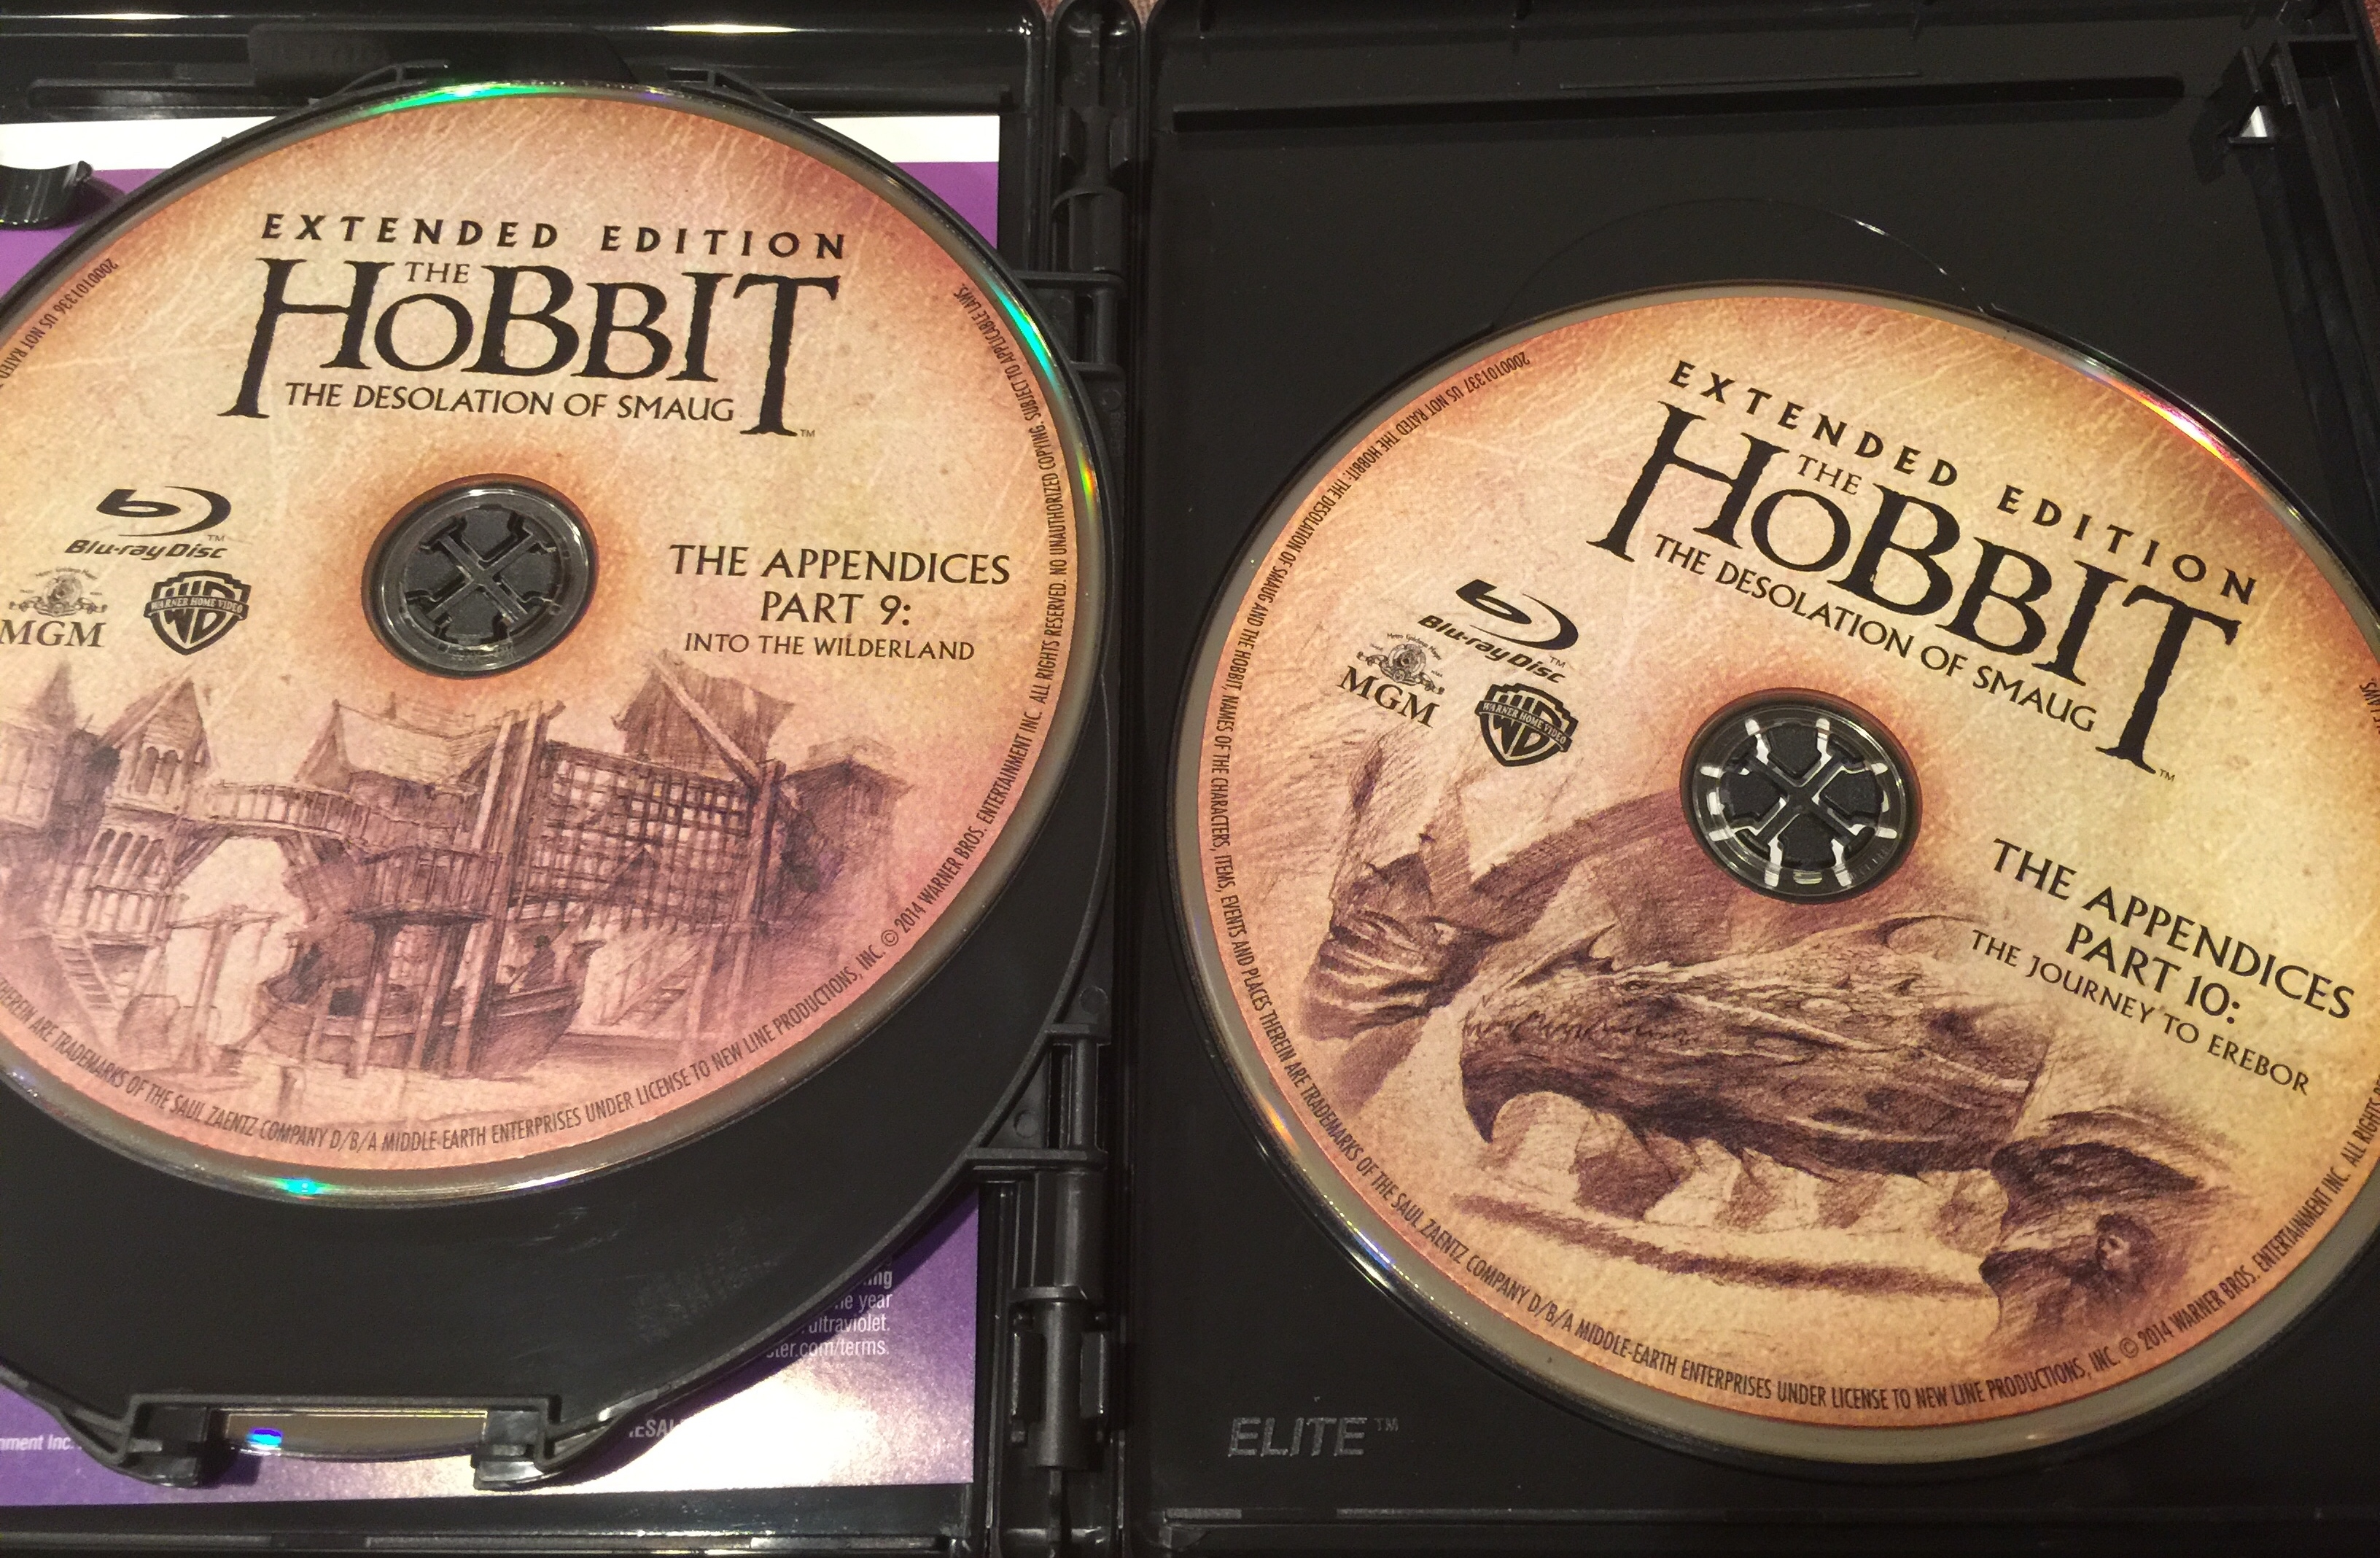 The Hobbit Desolation of Smaug Blu-ray Discs 4 and 5